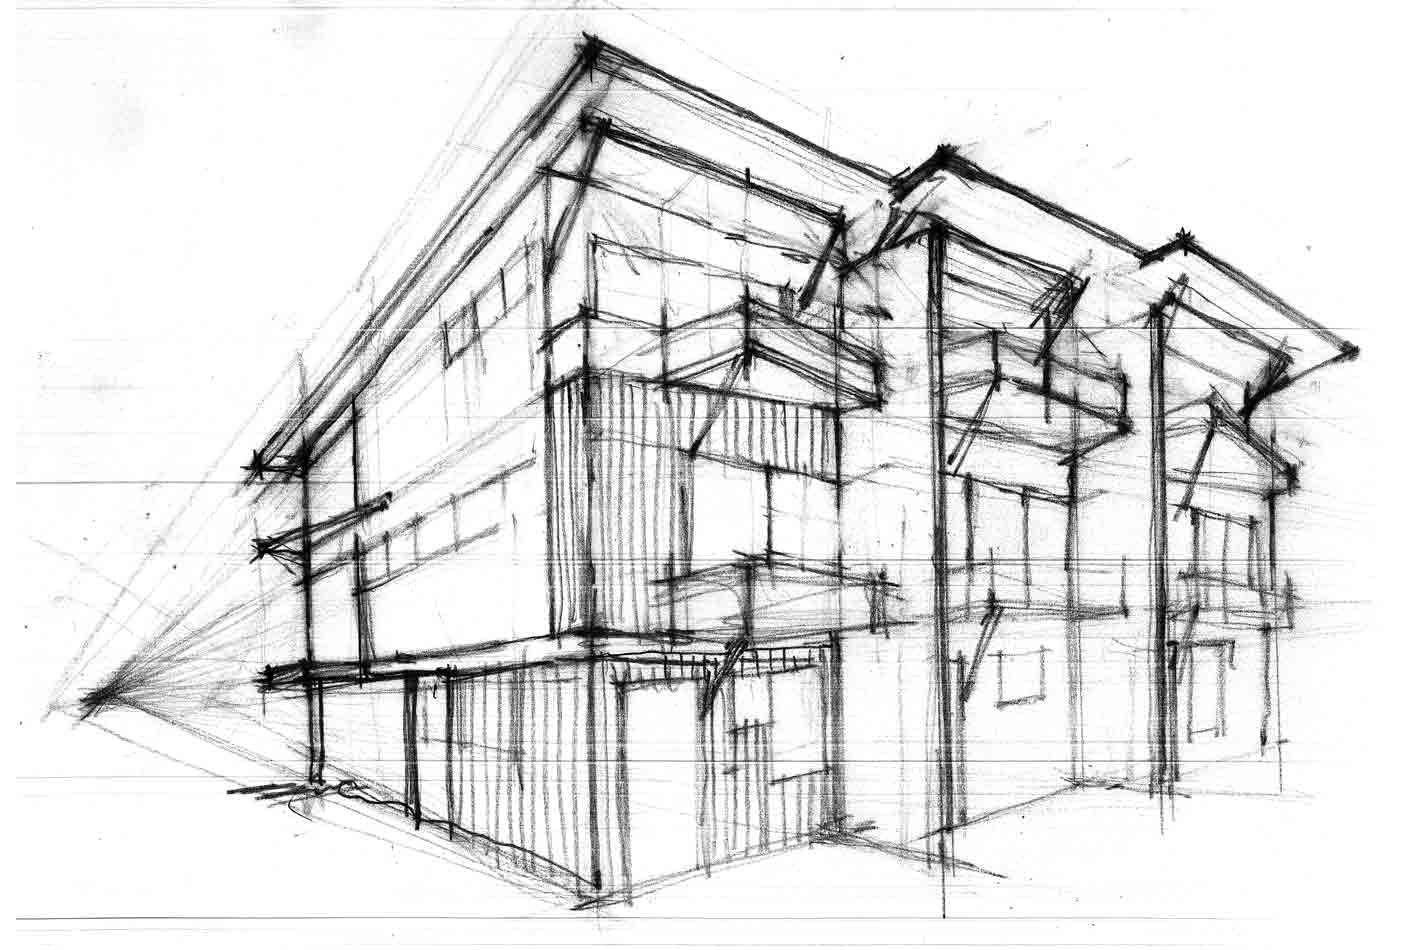 architecture buildings drawings. Exellent Buildings Building Sketching In Architecture Buildings Drawings